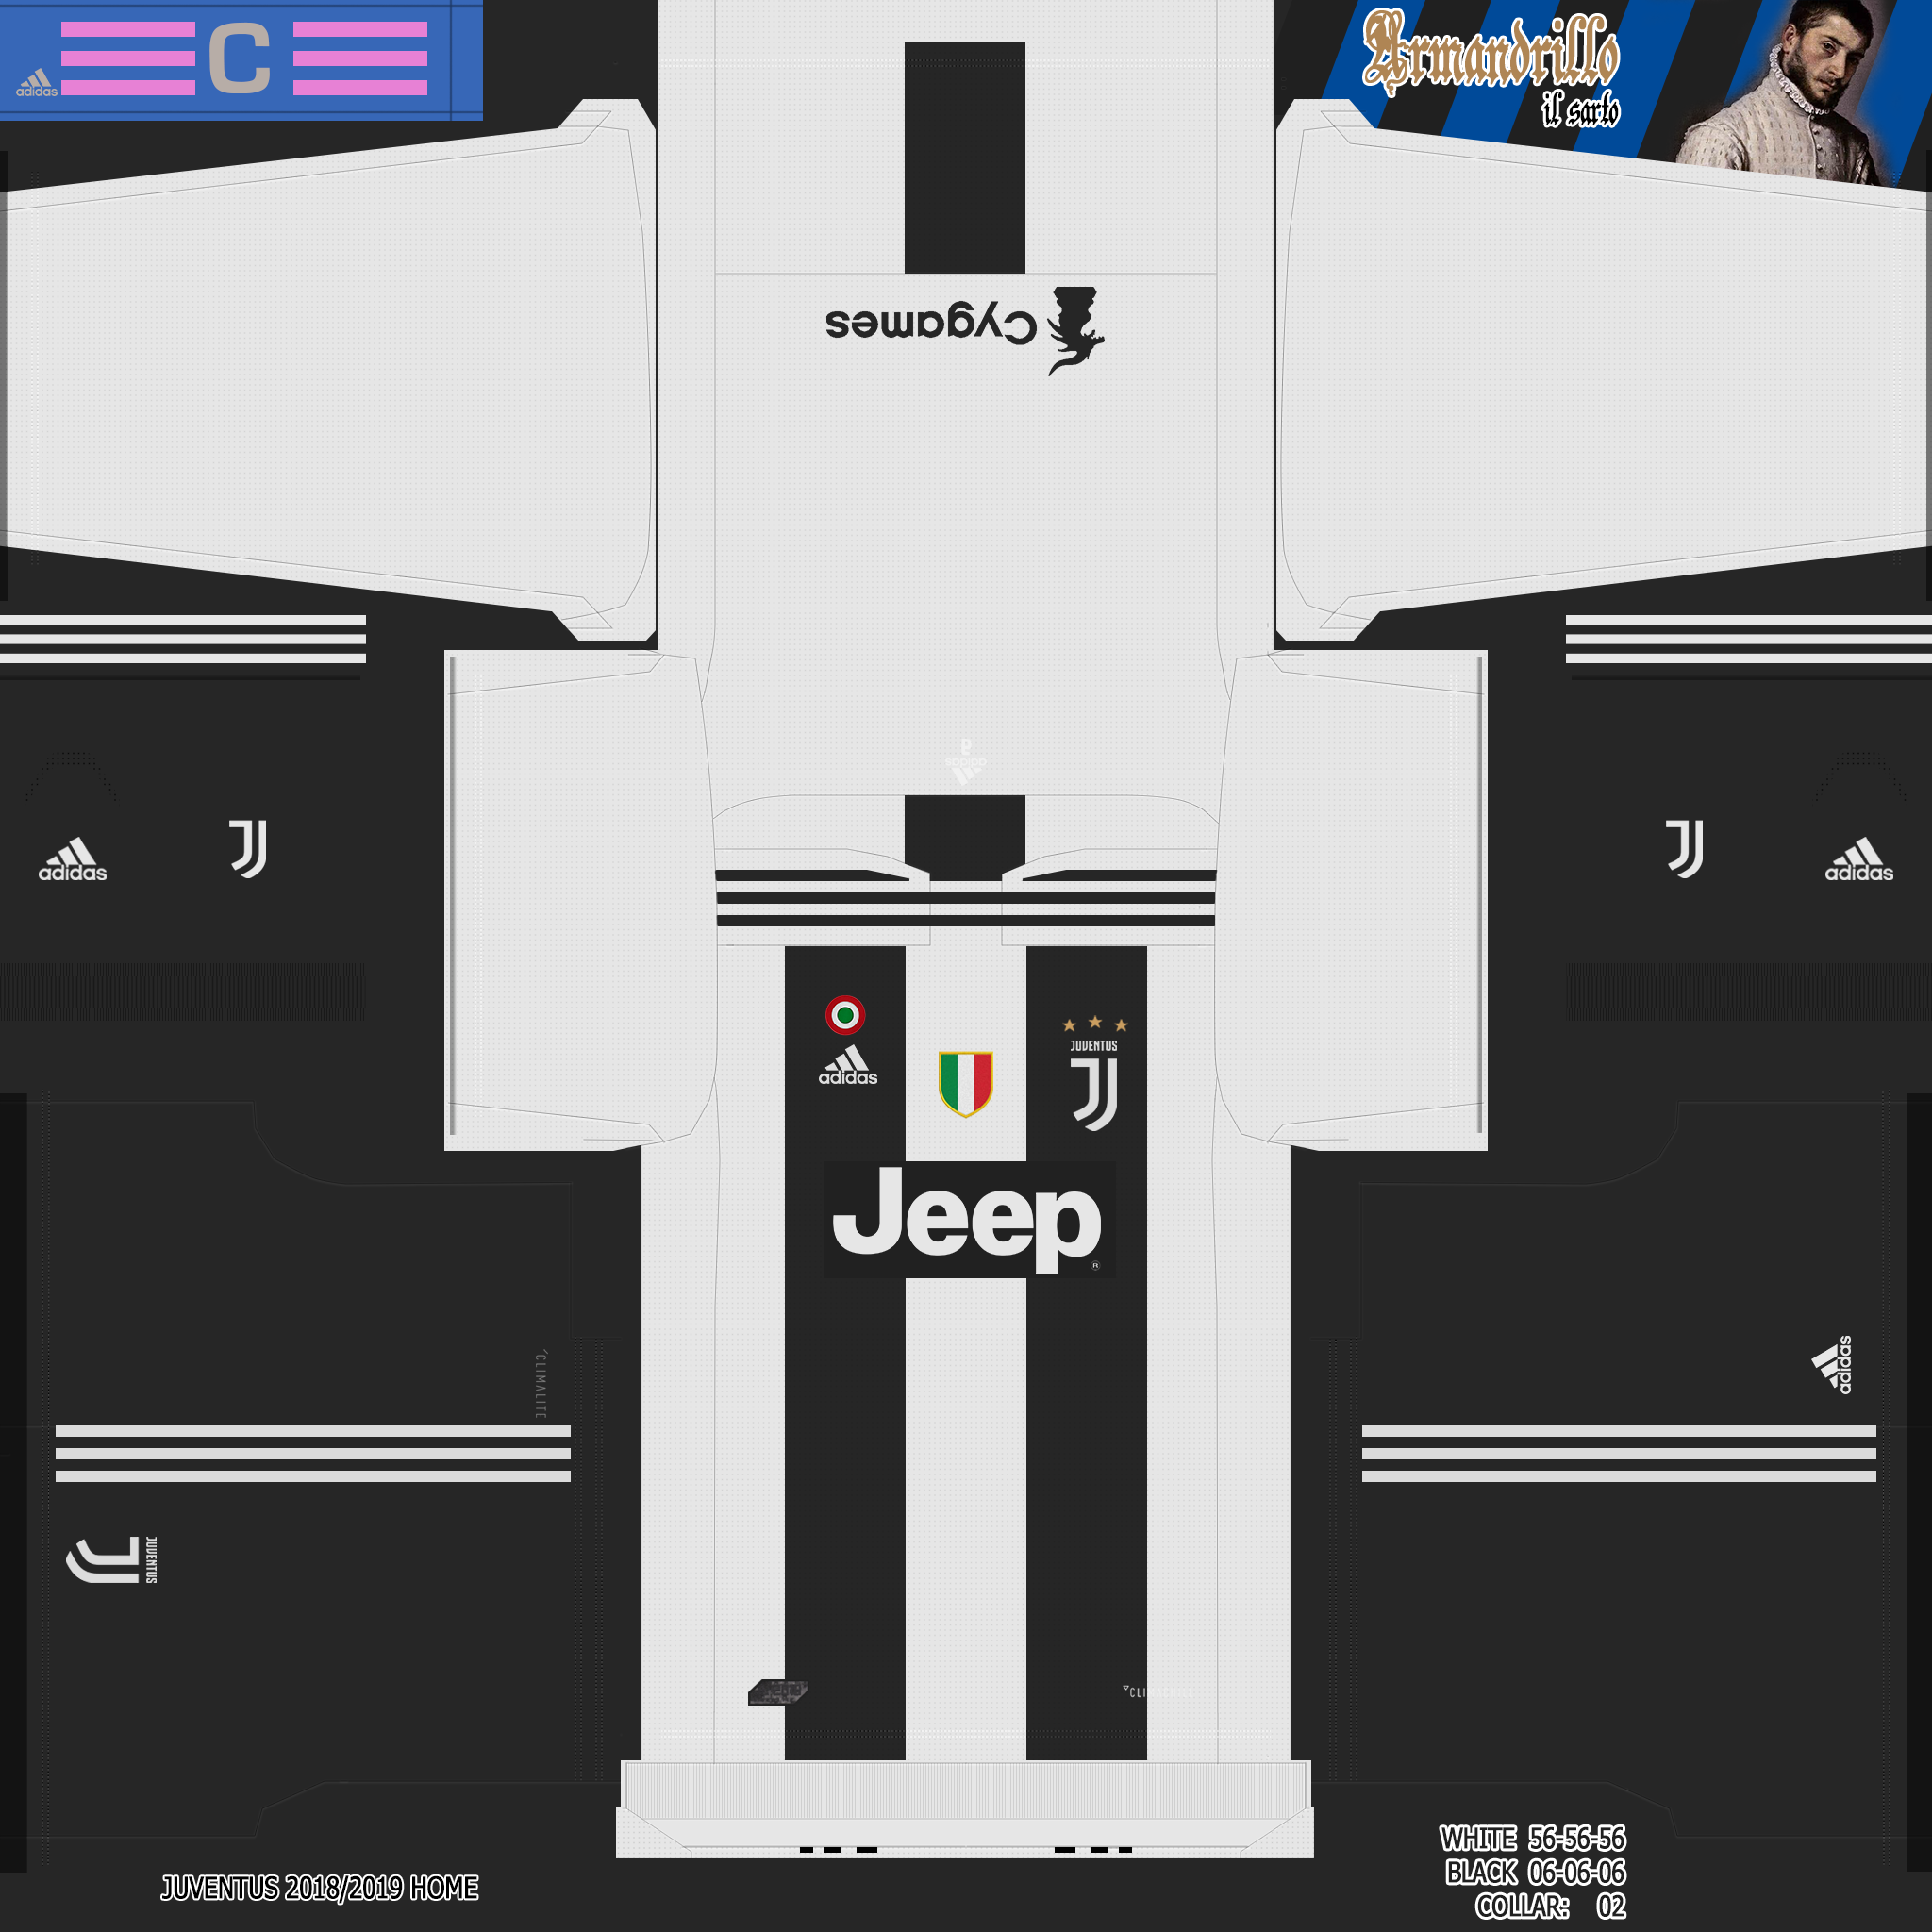 Kits - Juventus FC 2018/19 | PESTeam it Forum